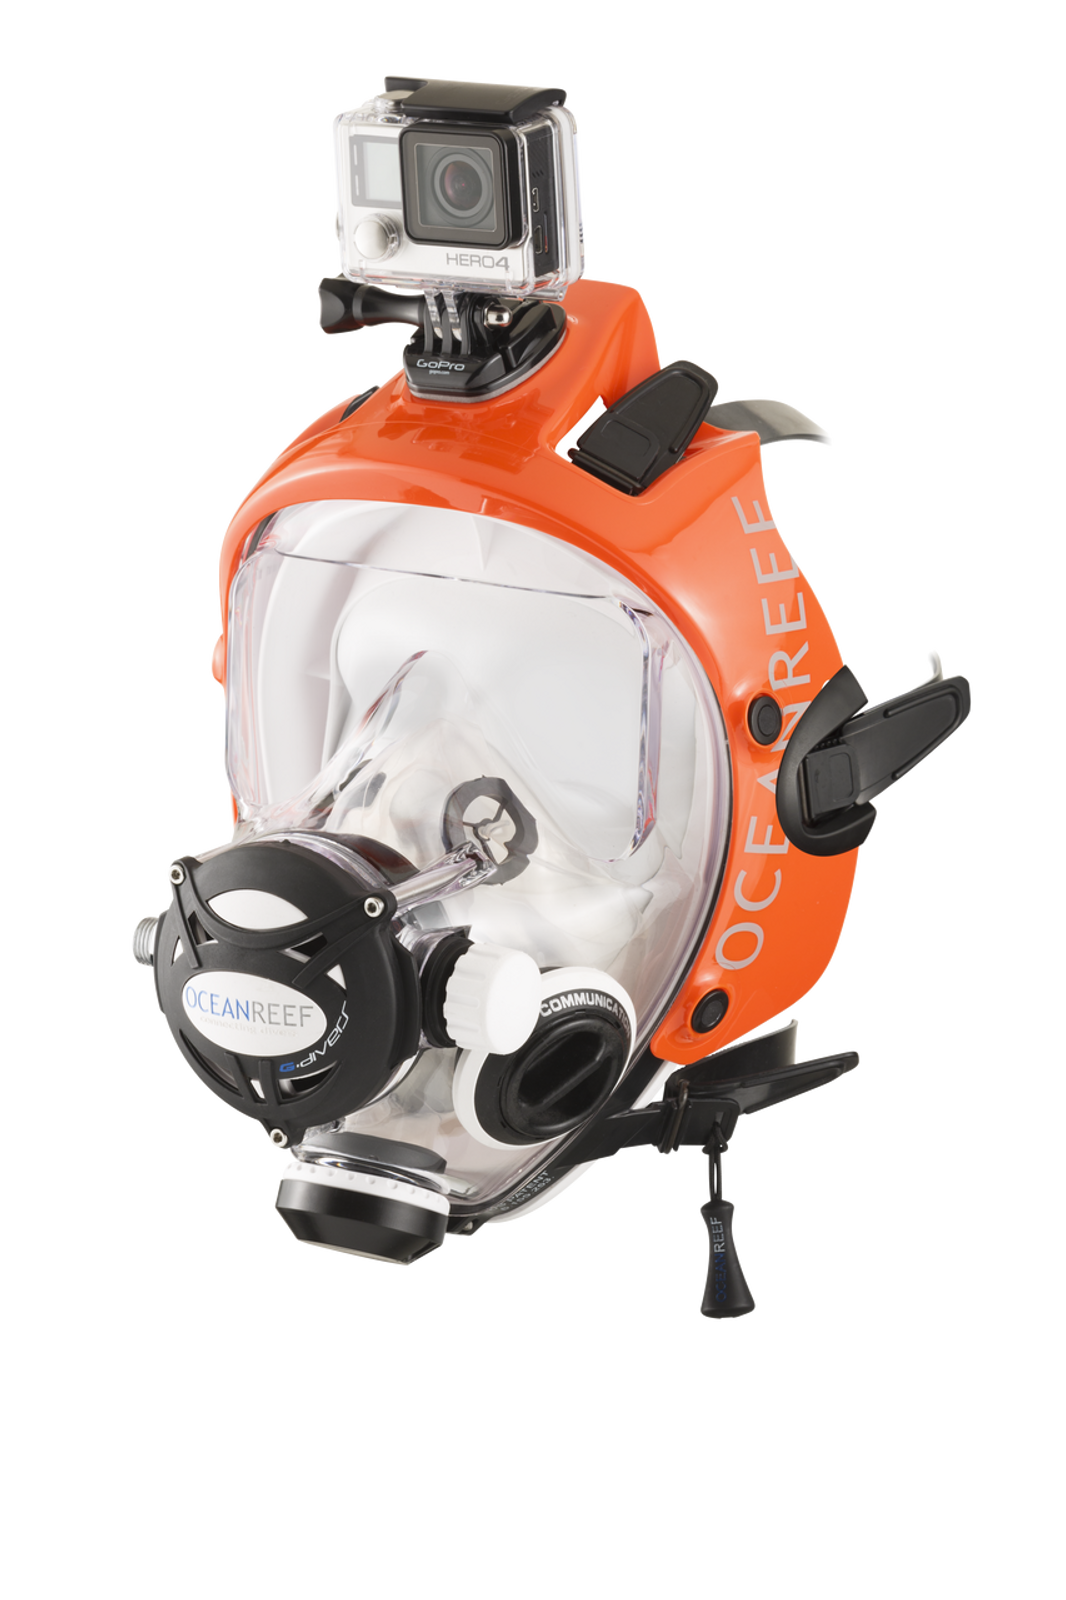 Gdivers white w/ Extender Frame orange and a Gopro mounted on (sold separetly-gopro not included)